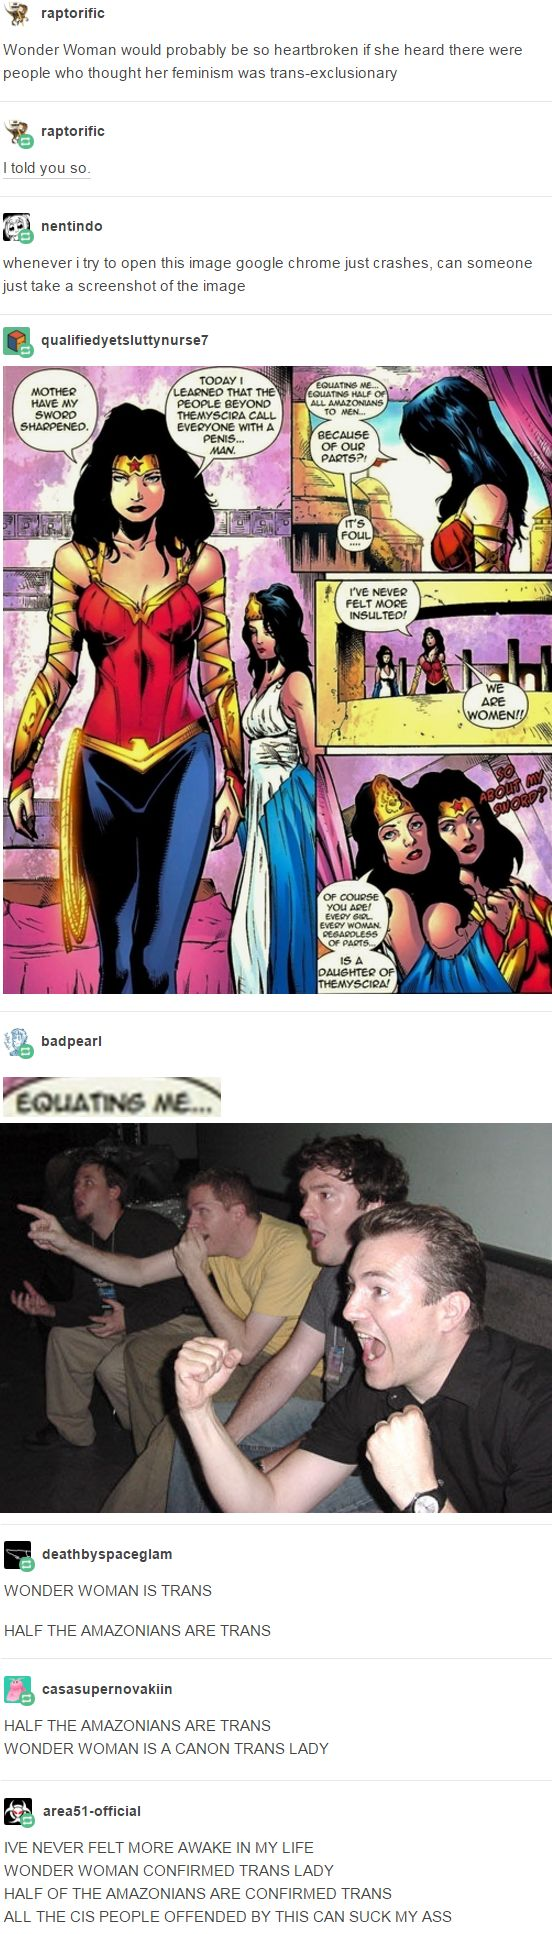 HALF THE AMAZONIANS ARE TRANS WONDER WOMAN IS A CANON TRANS LADY. http://narwhal-noir.tumblr.com/post/159001649165/area51-official-casasupernovakiin